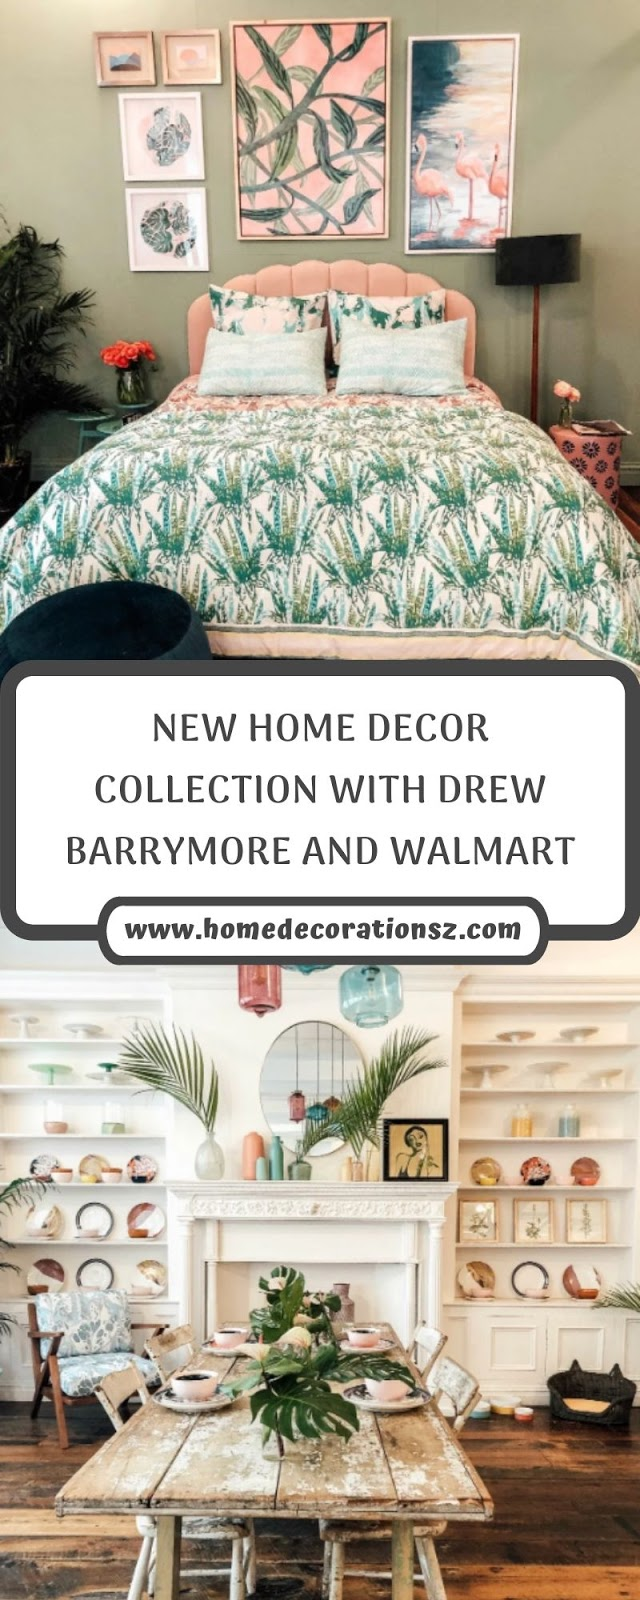 NEW HOME DECOR COLLECTION WITH DREW BARRYMORE AND WALMART